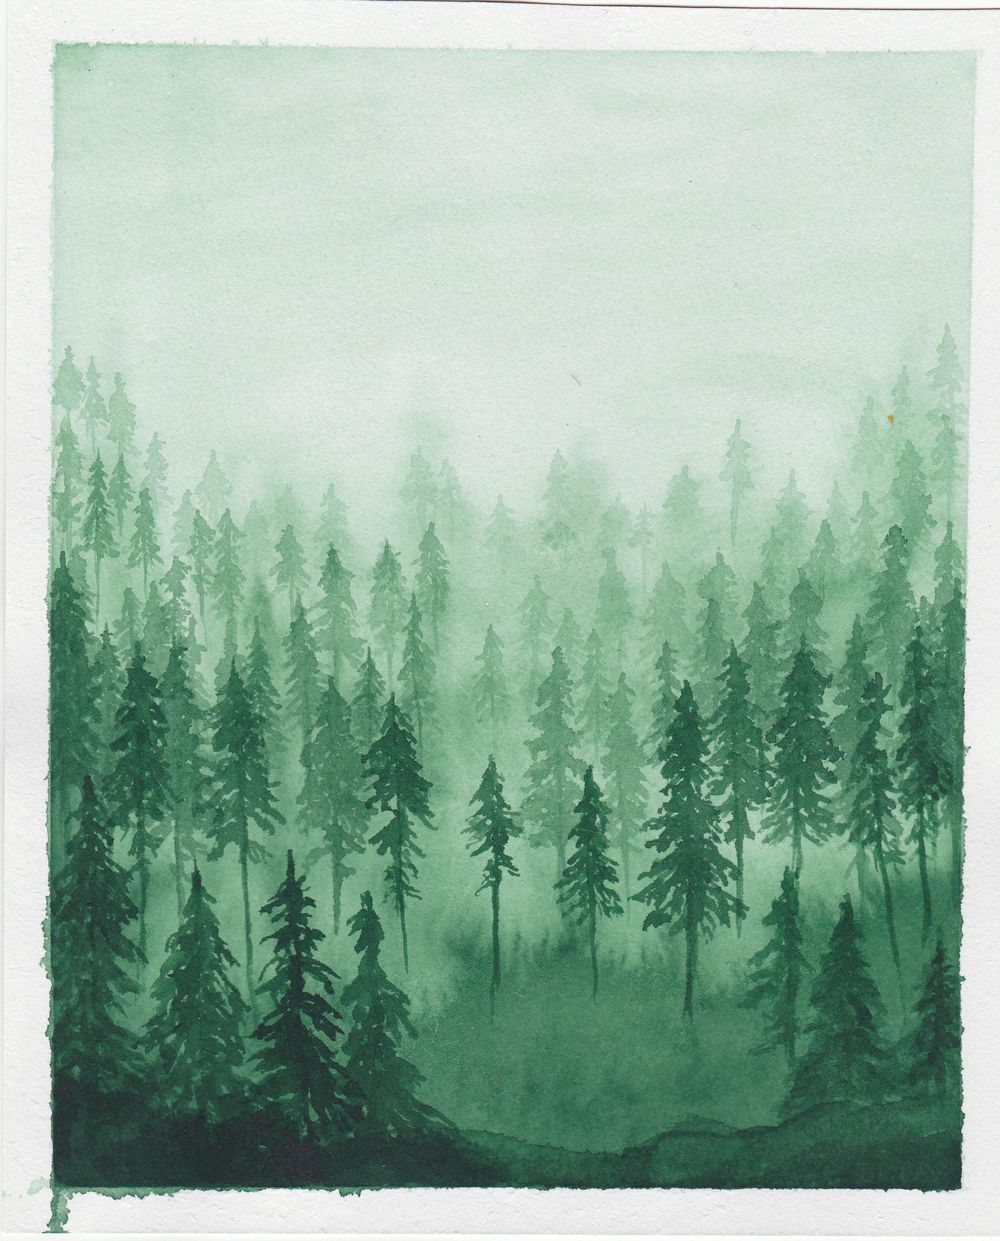 green forest with lots of trees - image 1 - student project